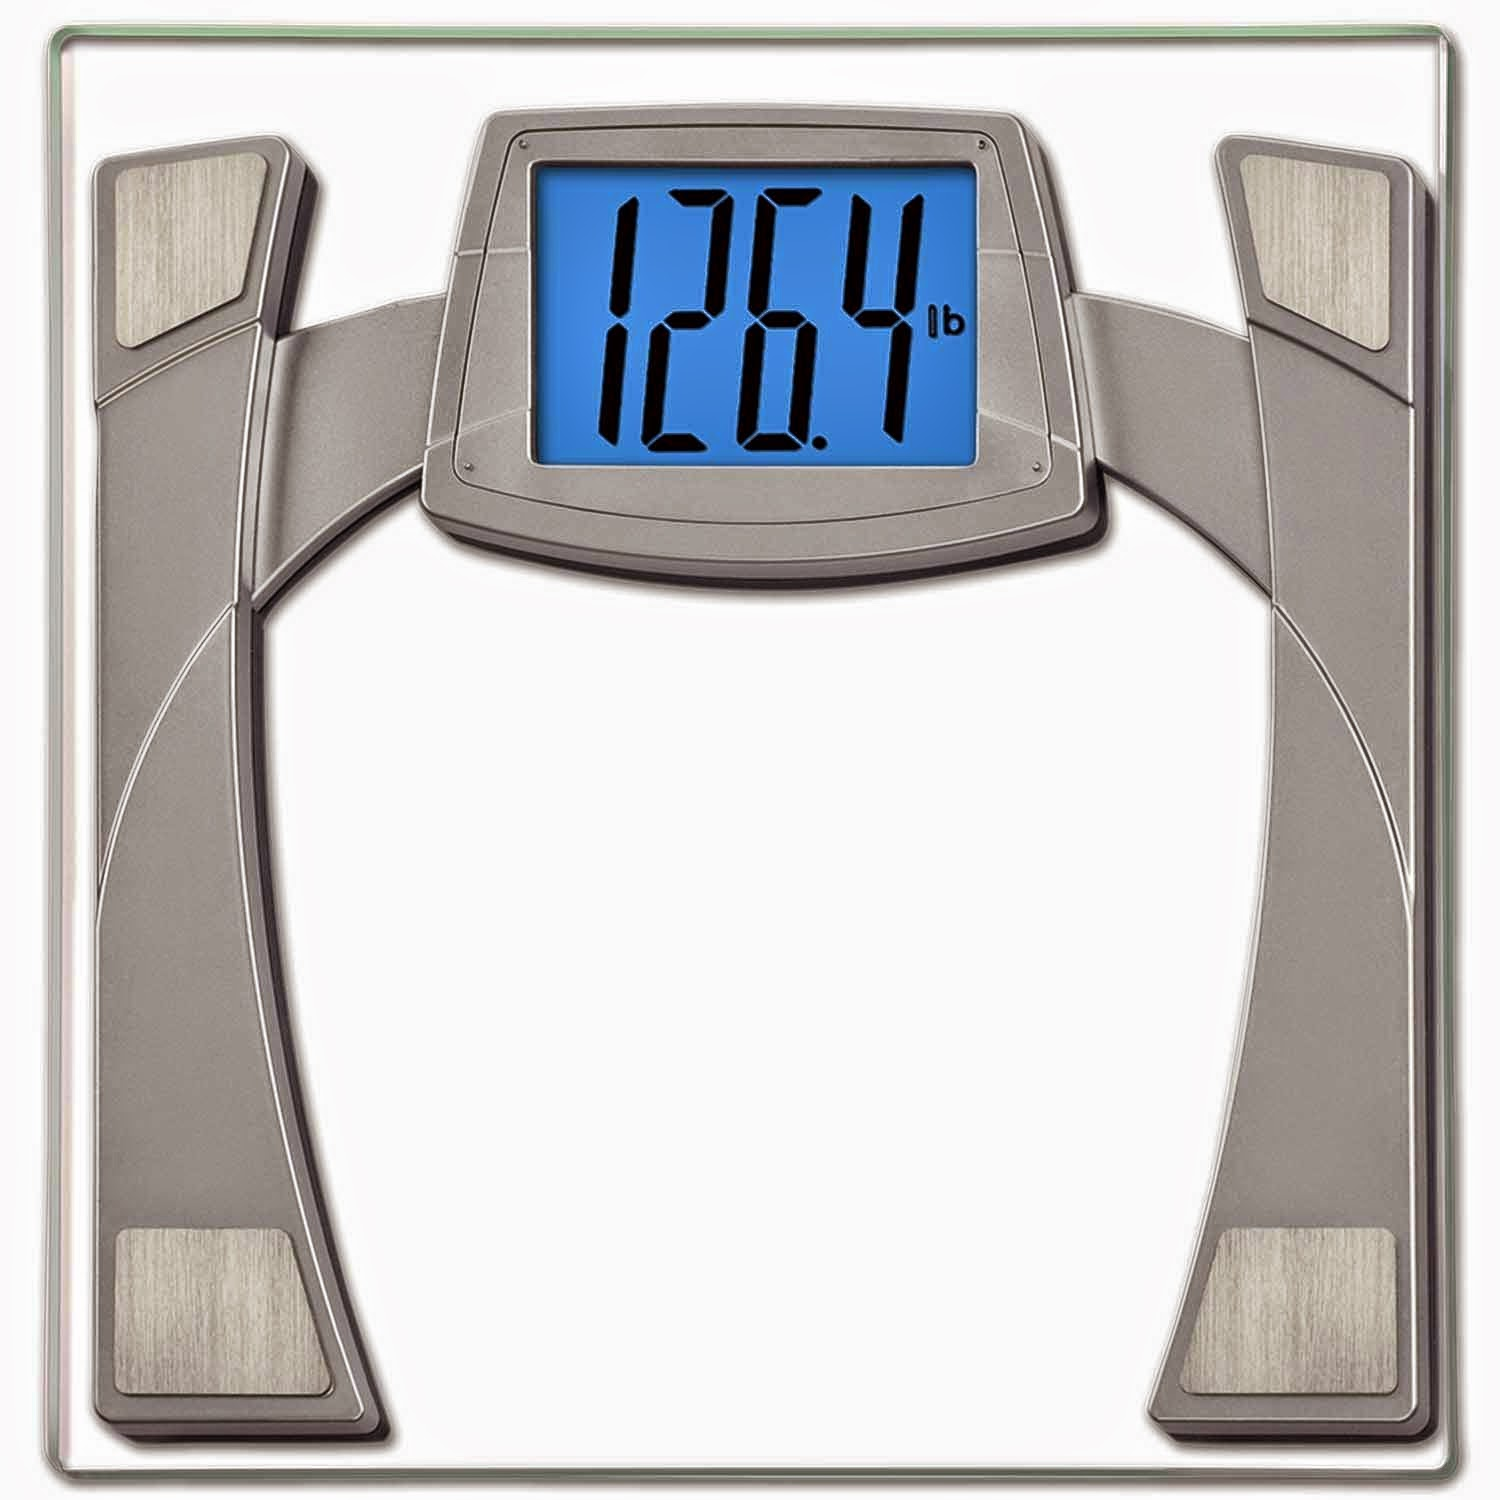 Product spotlight meet the eatsmart precision digital bathroom scale - Nothing Will Do That Better Than The Eat Smart Precision Max View Digital Bathroom Scale